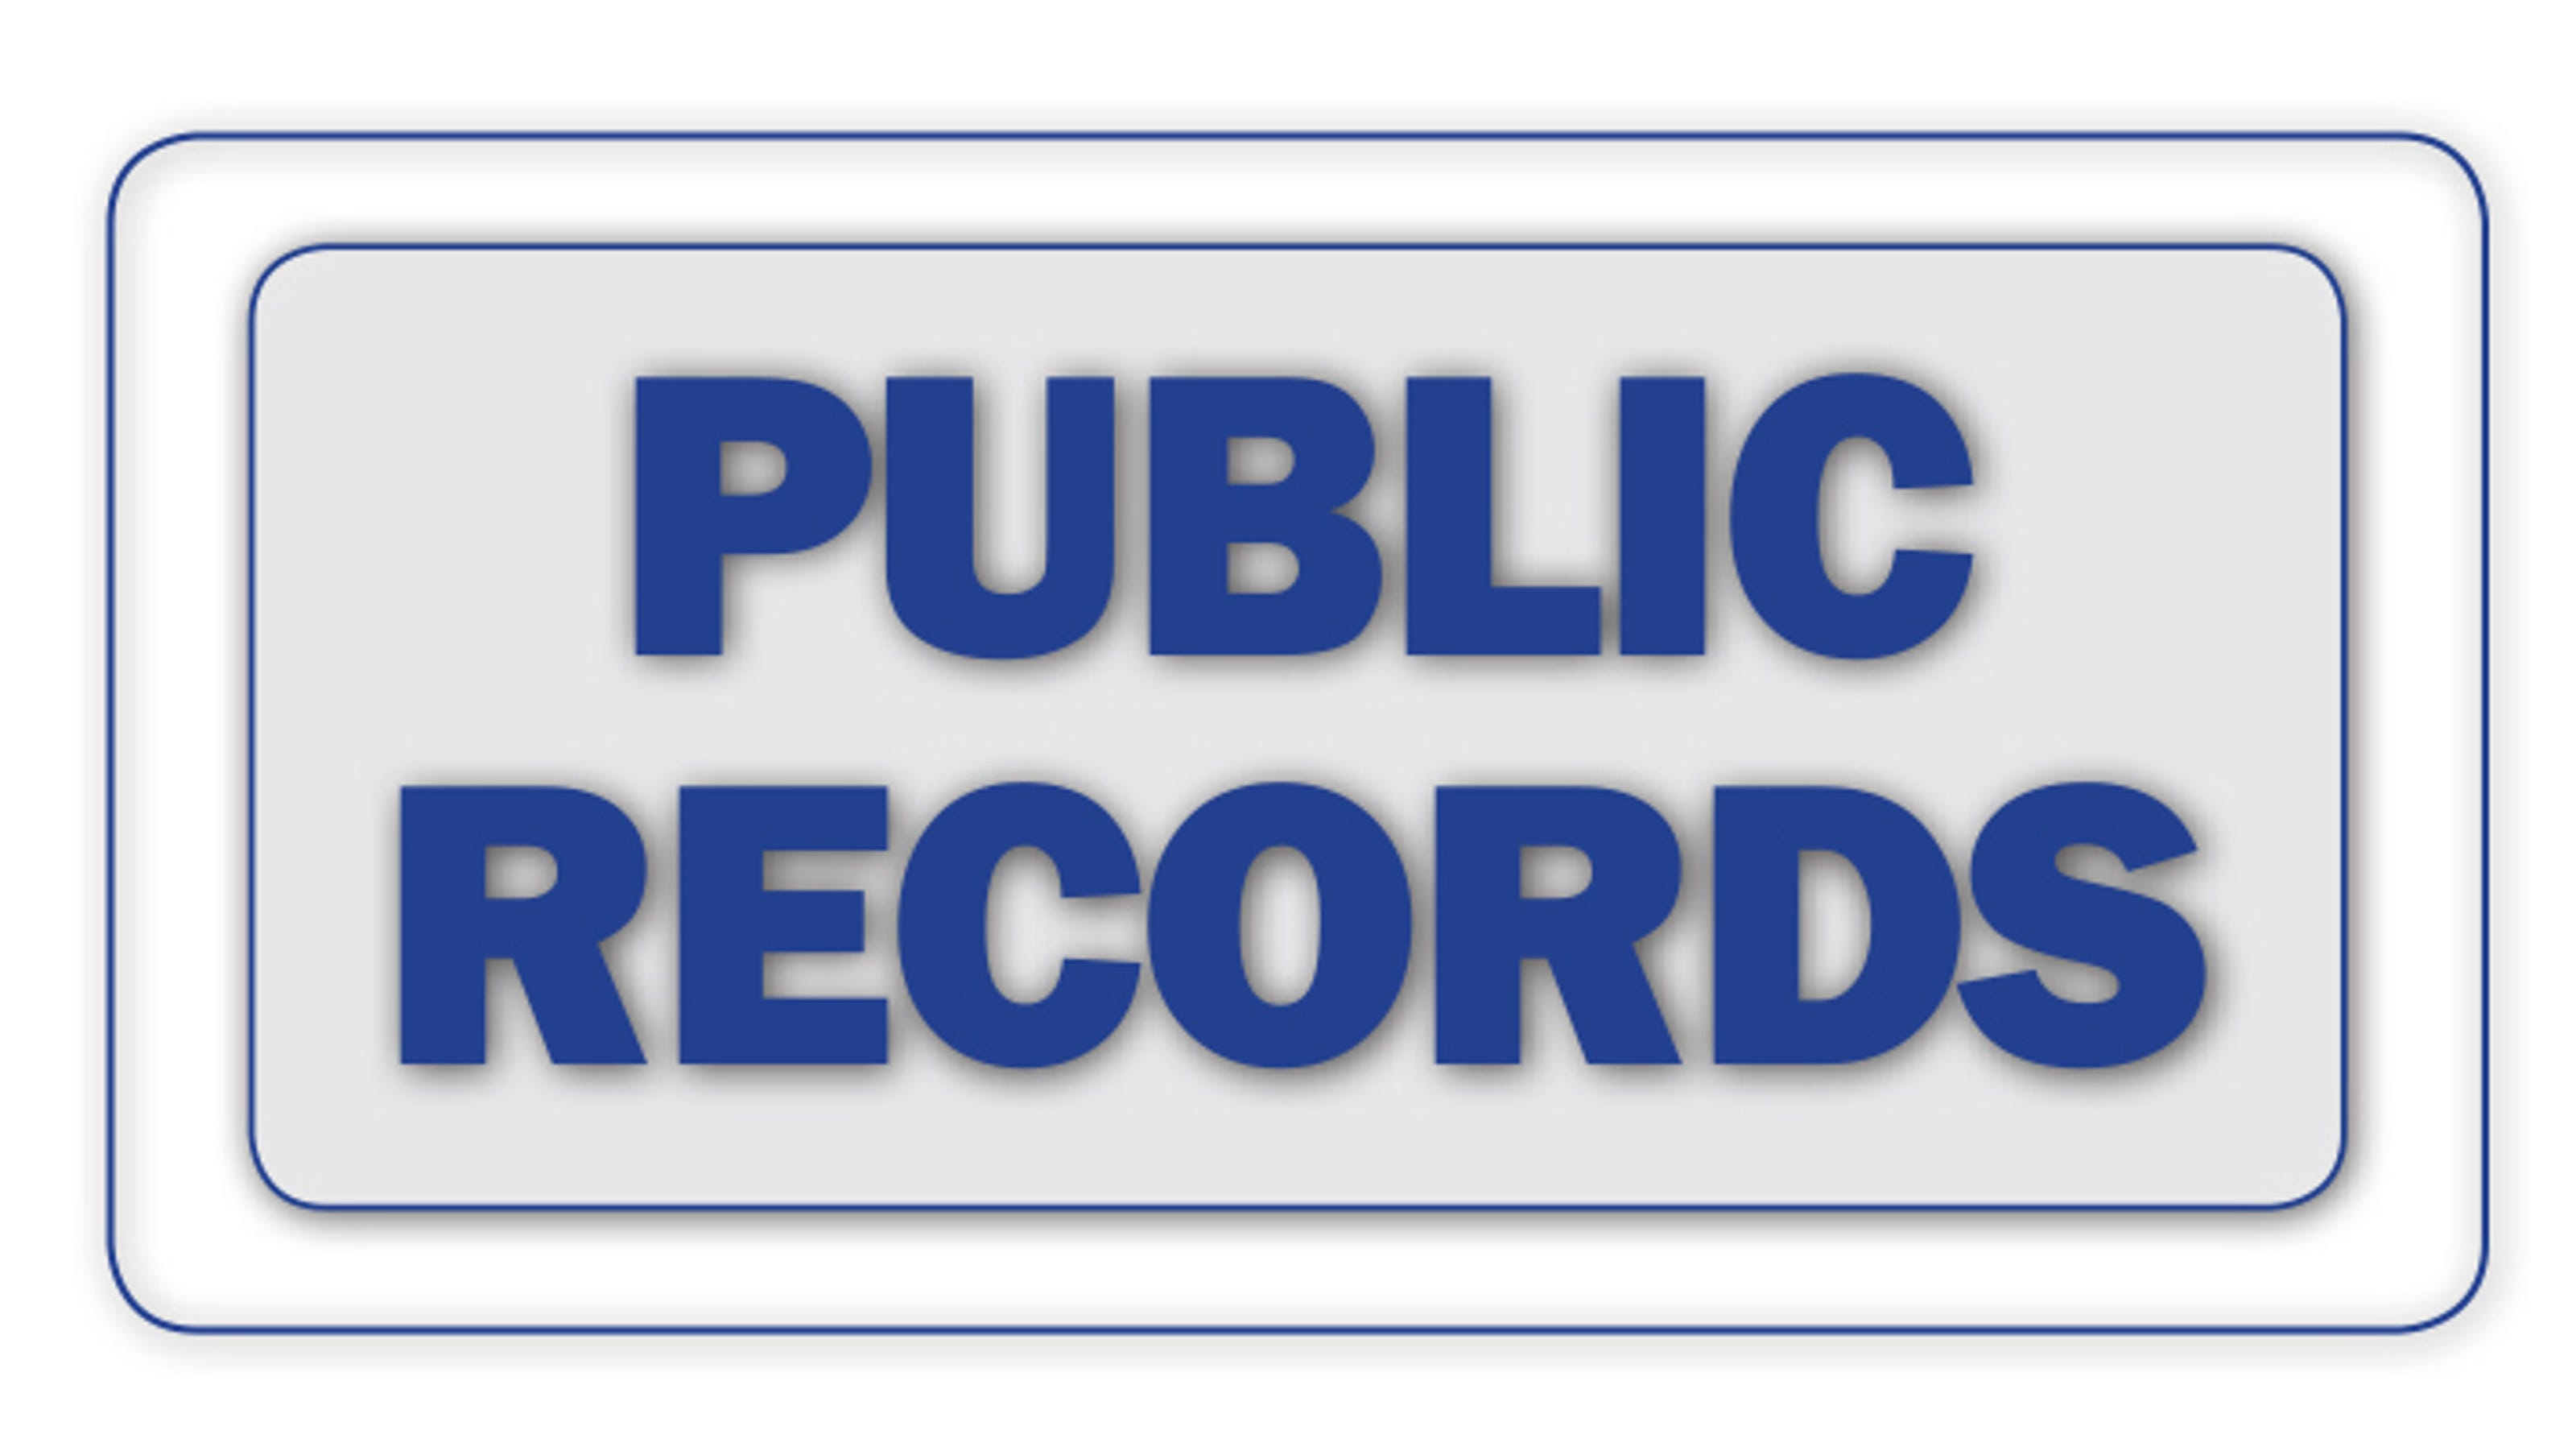 Public records May